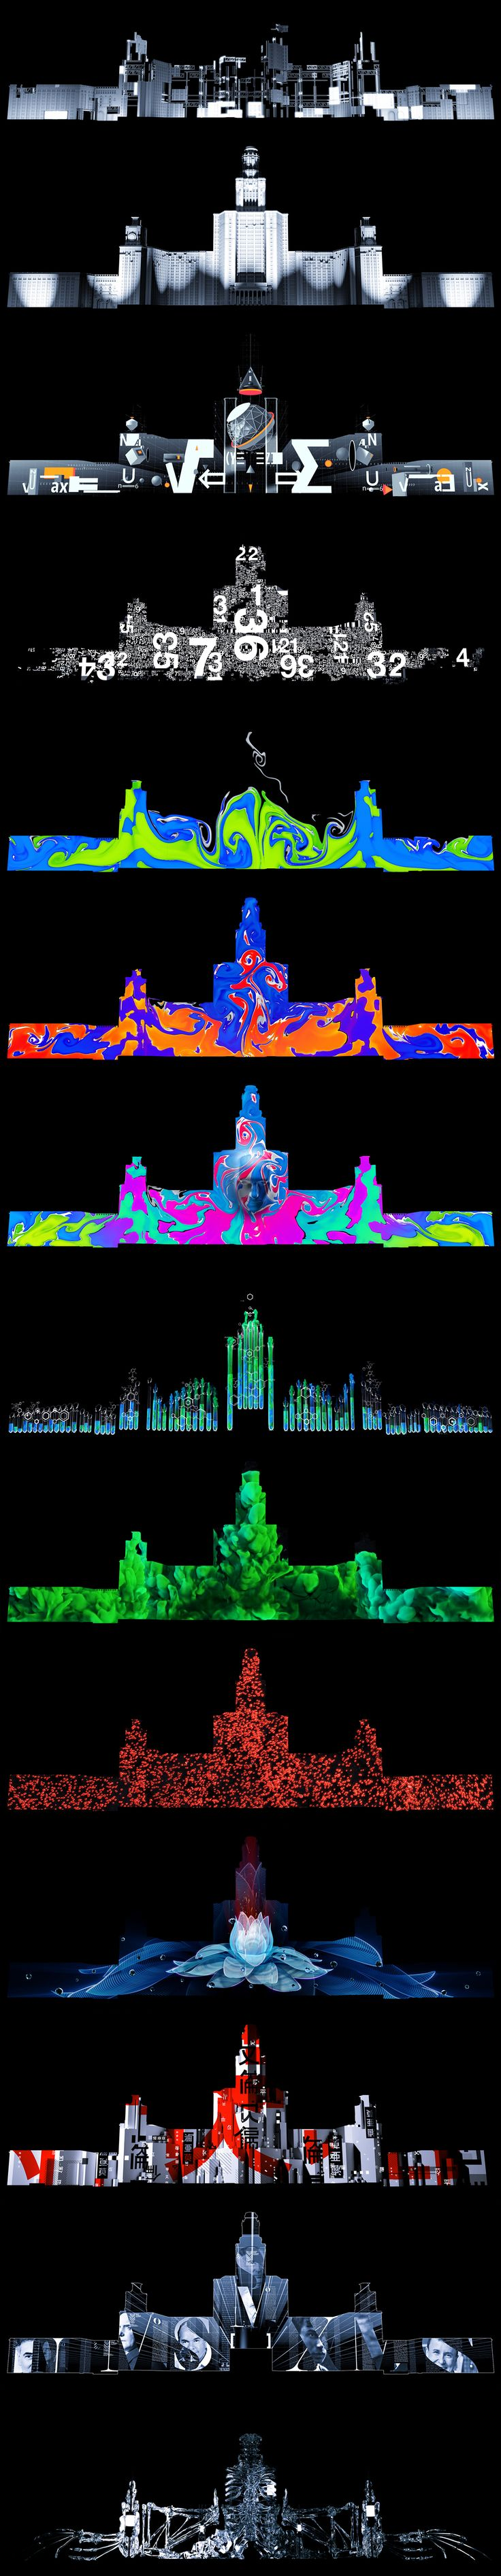 Art of Science (projection show) on Behance